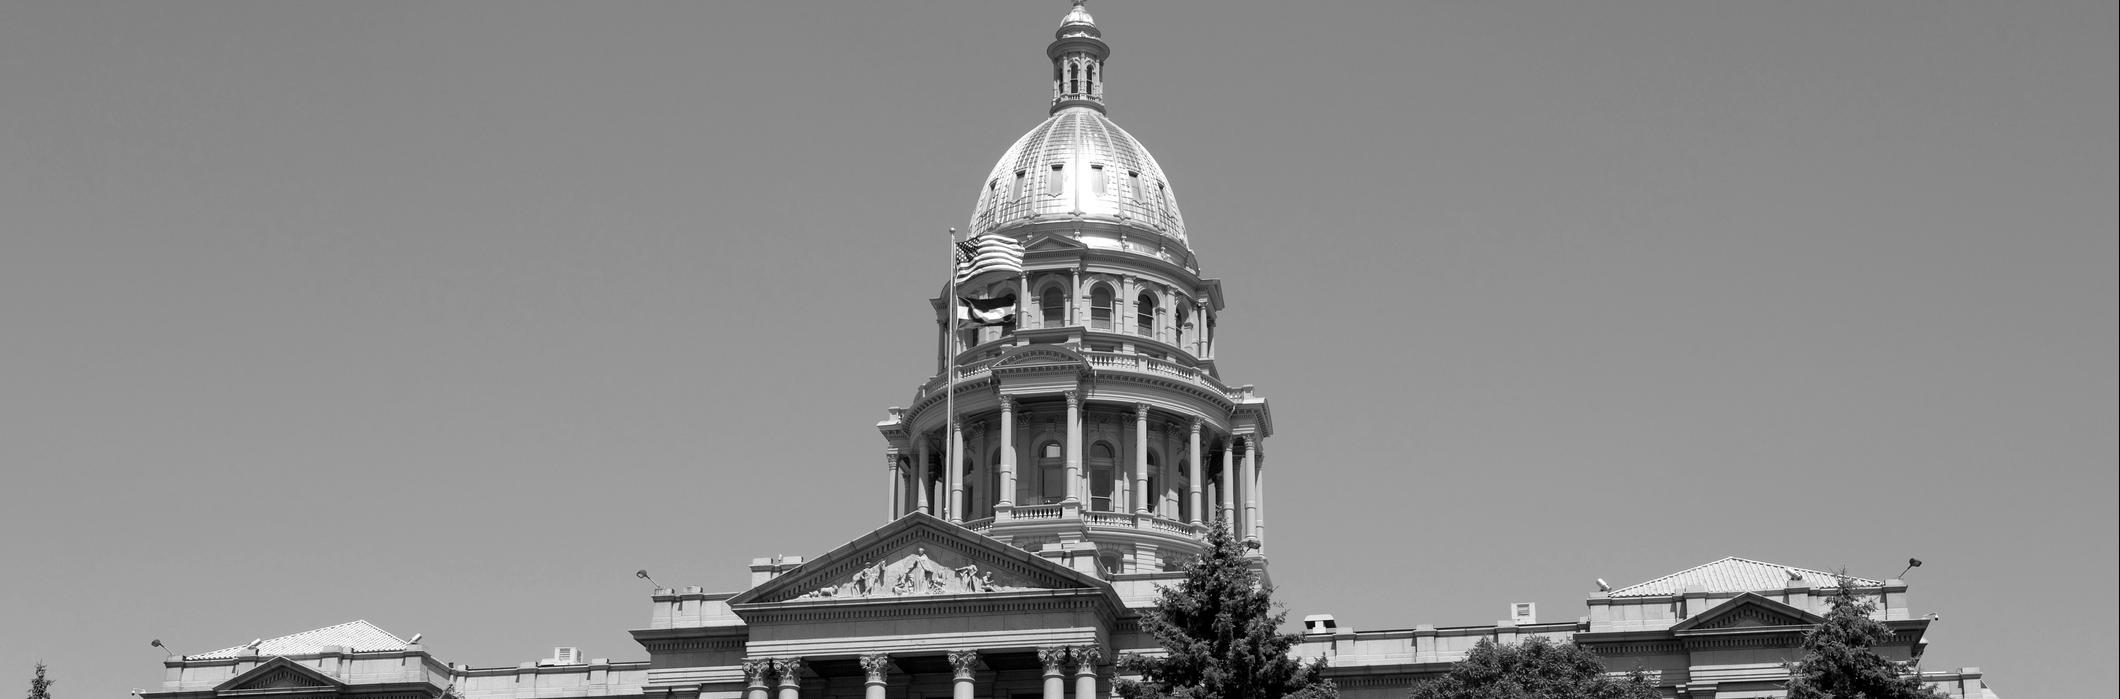 Image of Colorado capitol building